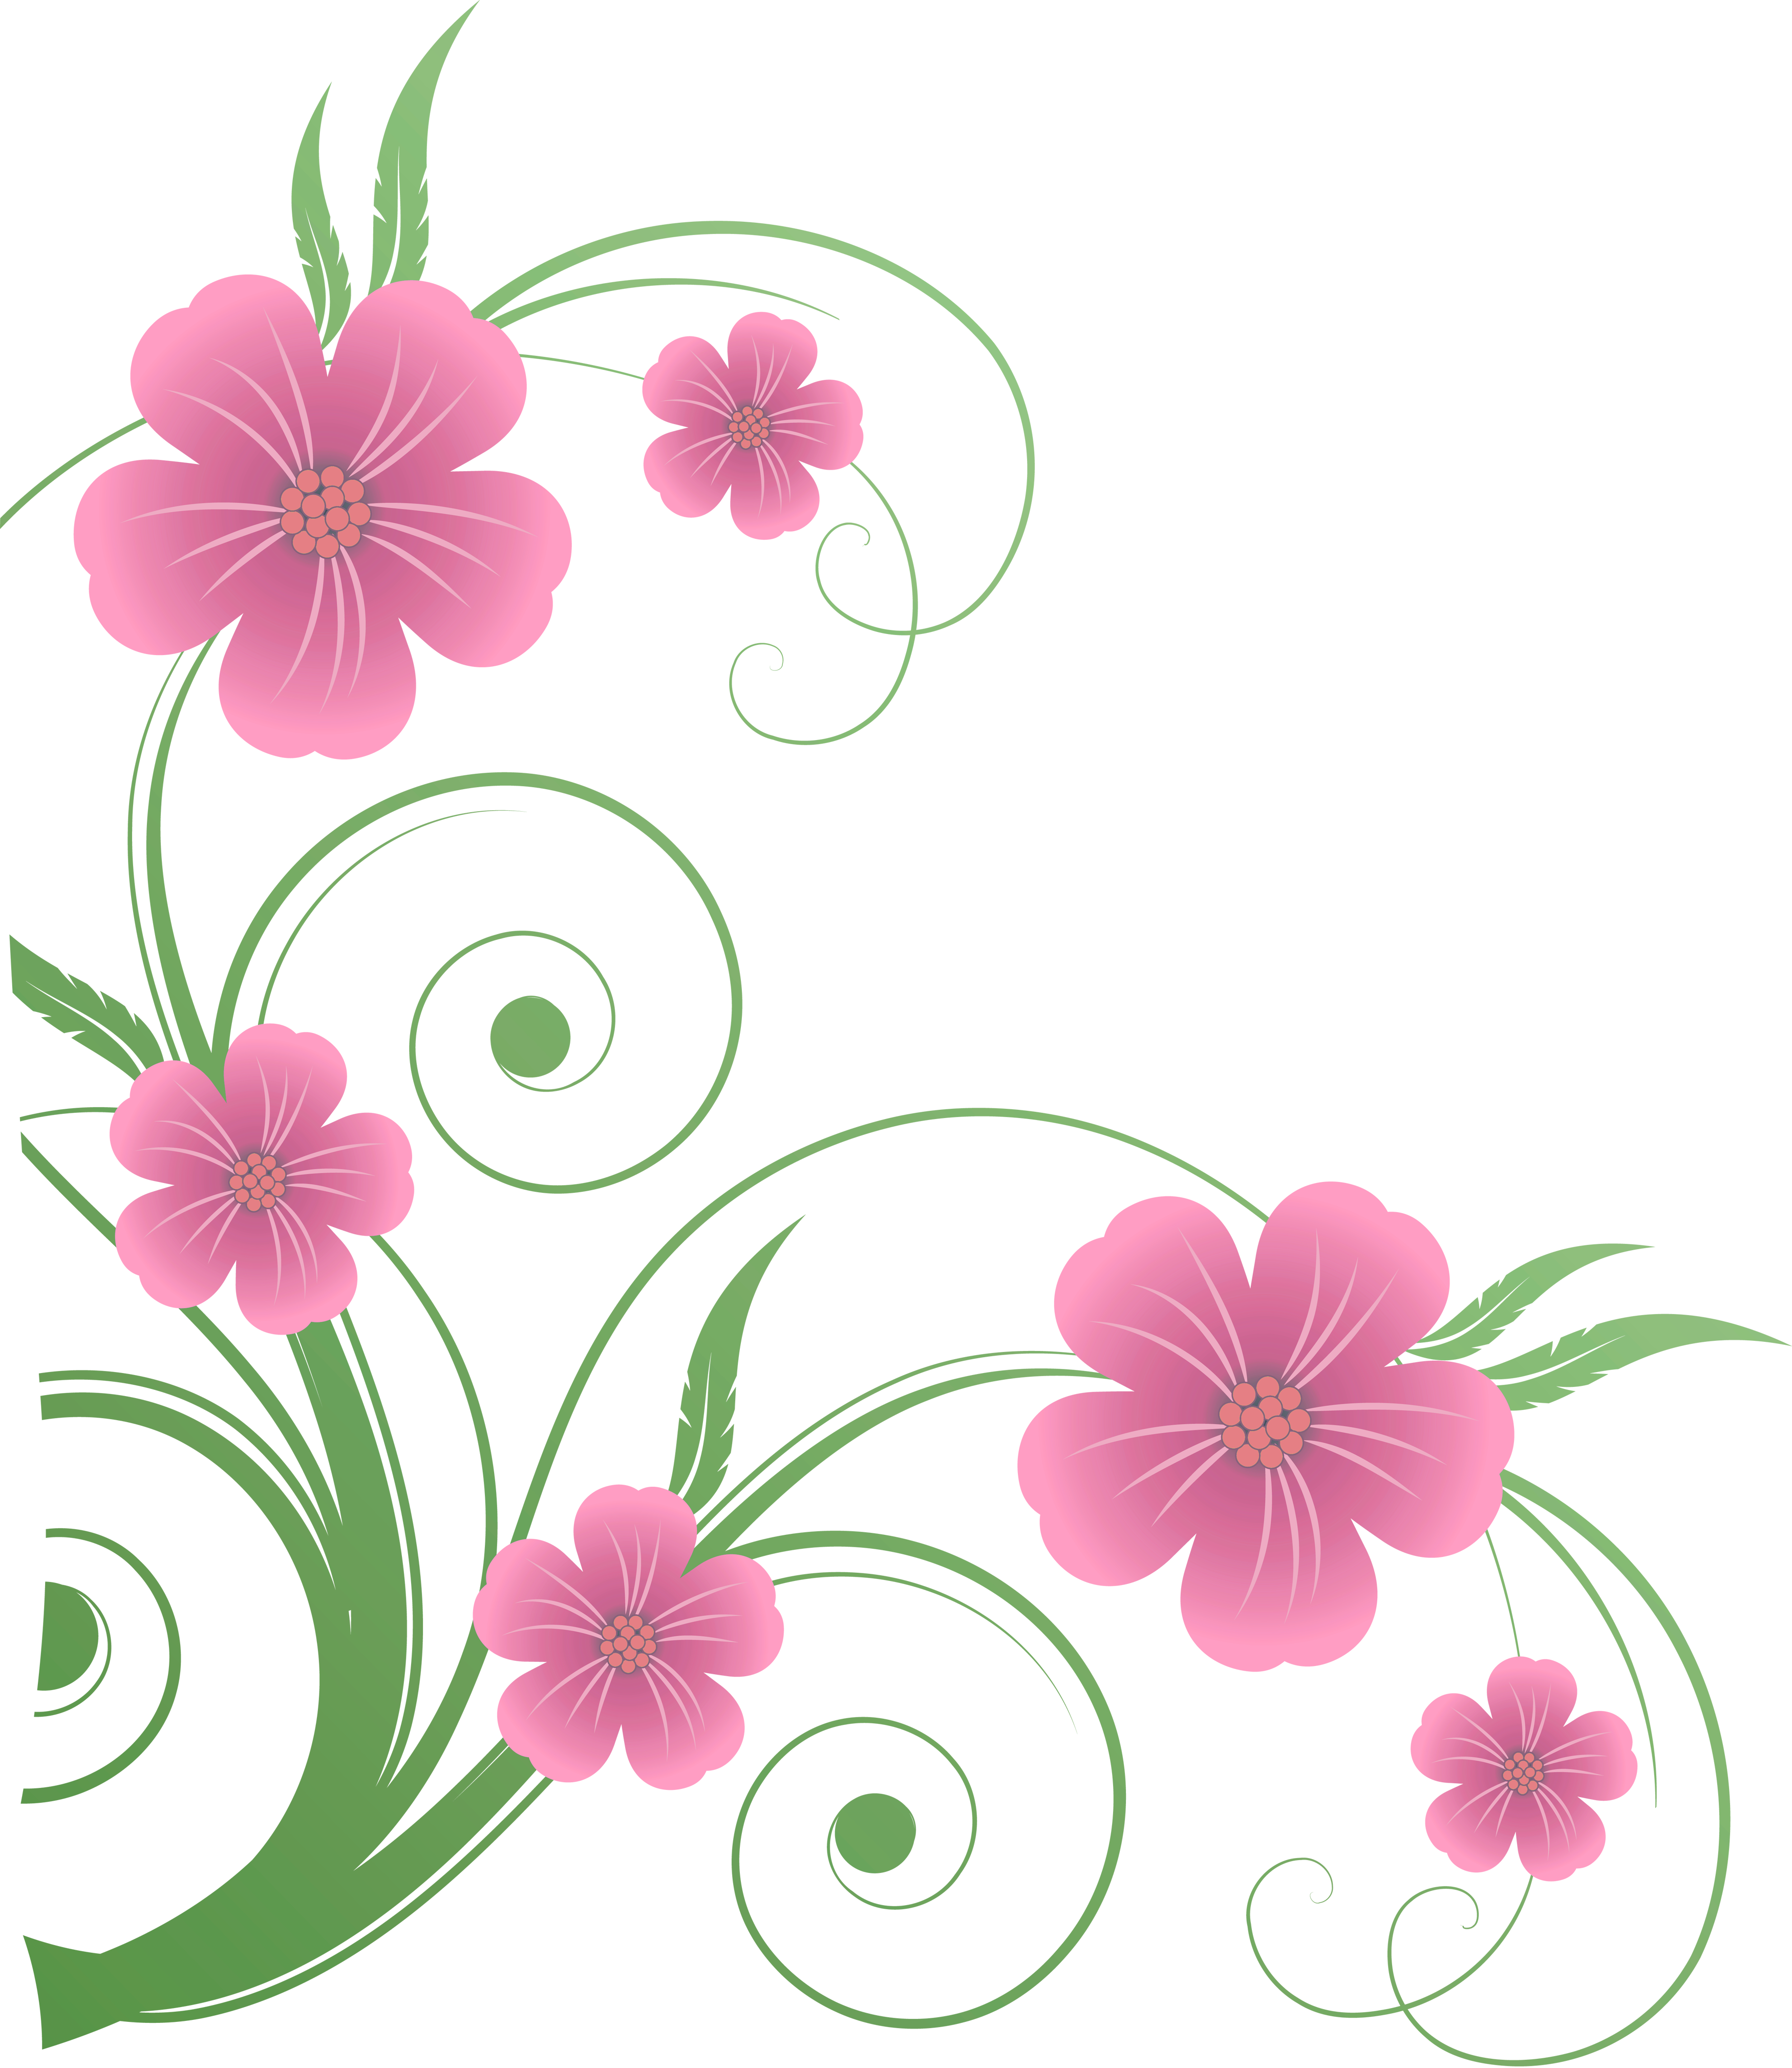 Flower clipart images png freeuse download Flowers PNG Decorative Element Clipart | Flowers | Pinterest ... freeuse download